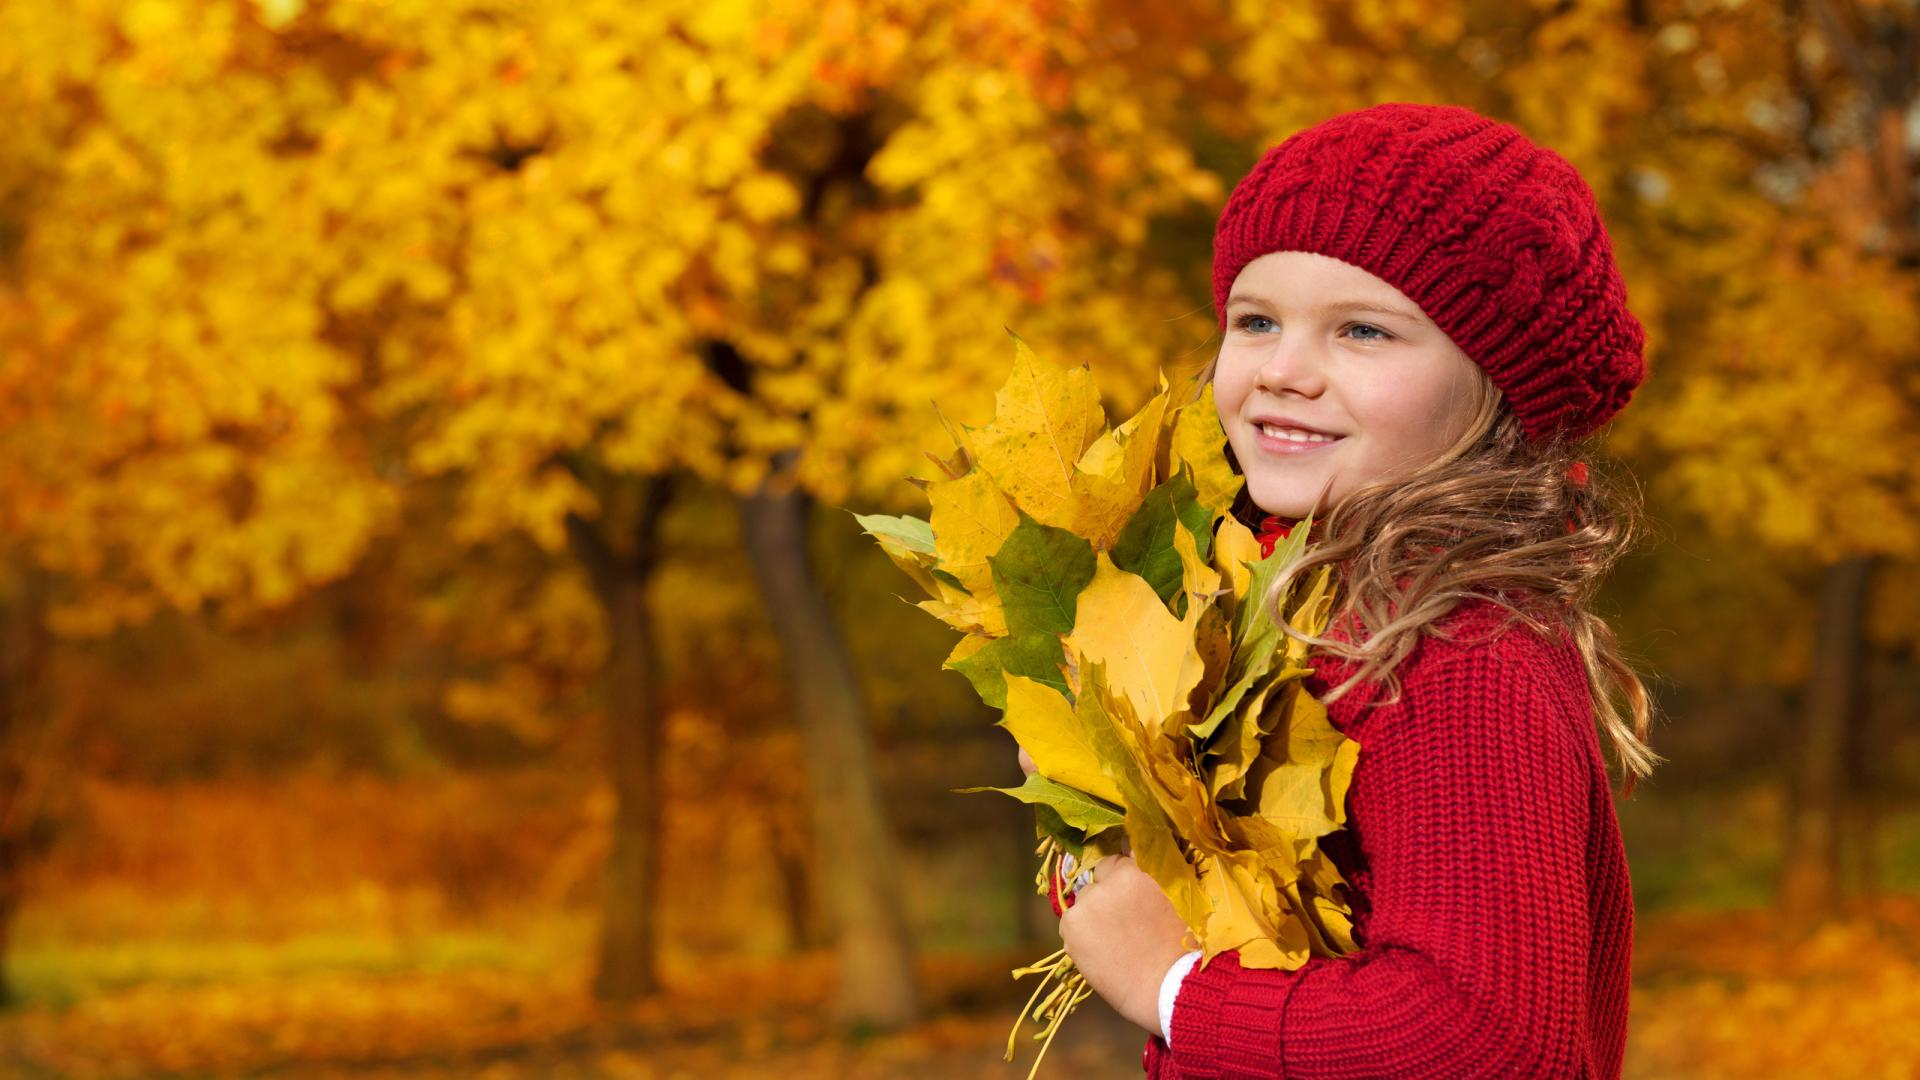 Cute Small Girl Wallpapers For Facebook Yellow 1920x1080 Wallpaper High Definition High